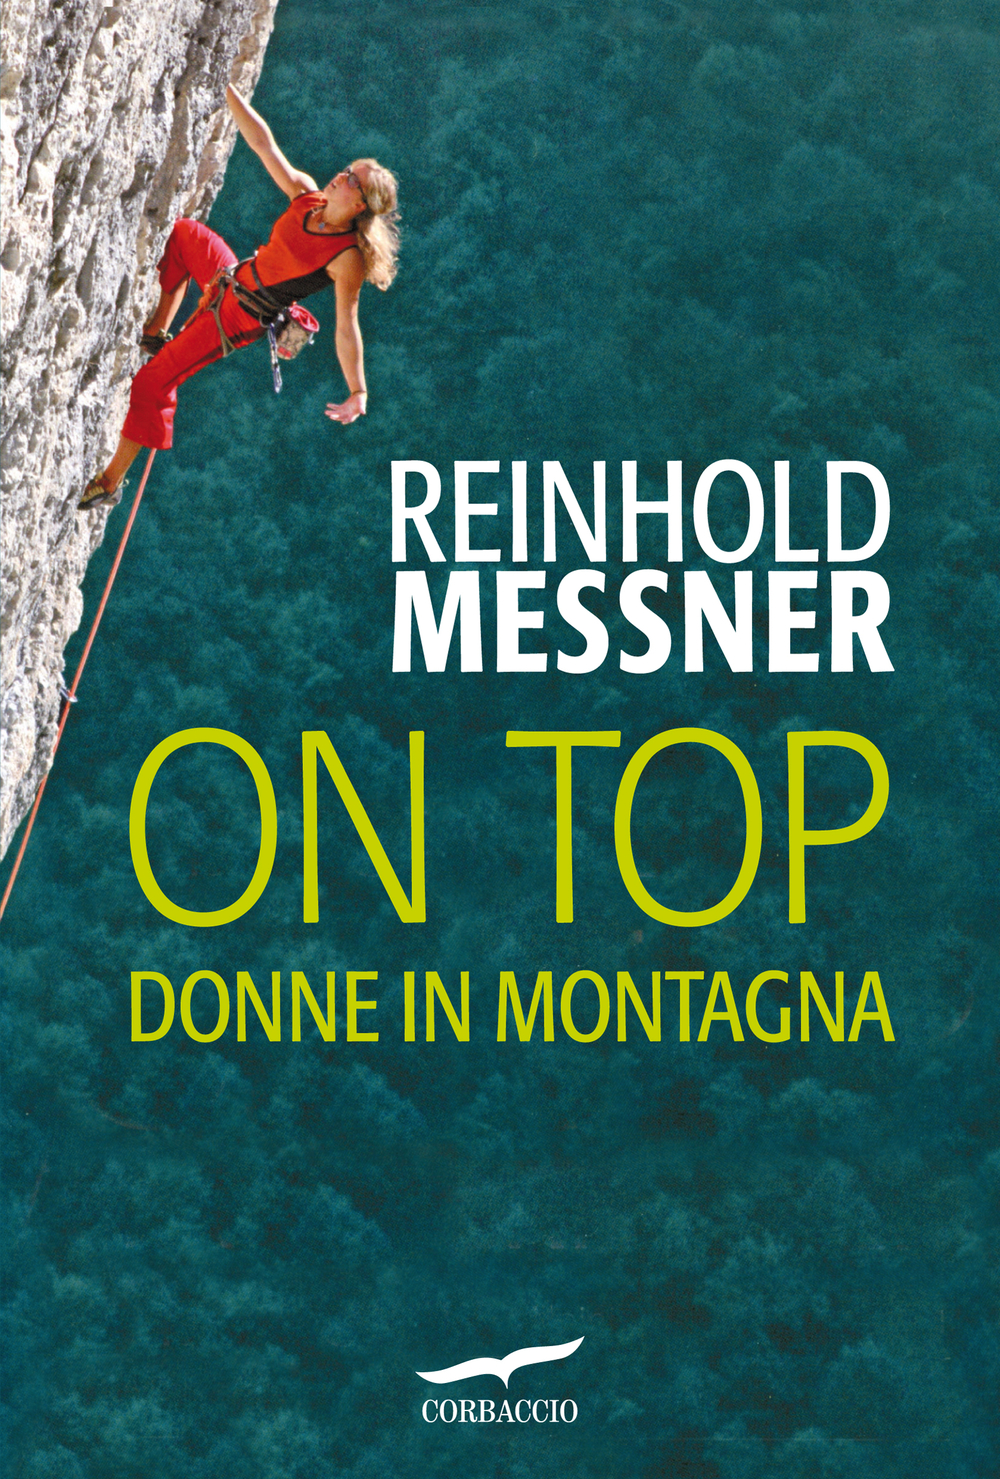 On Top. Donne in montagna By: Reinhold Messner